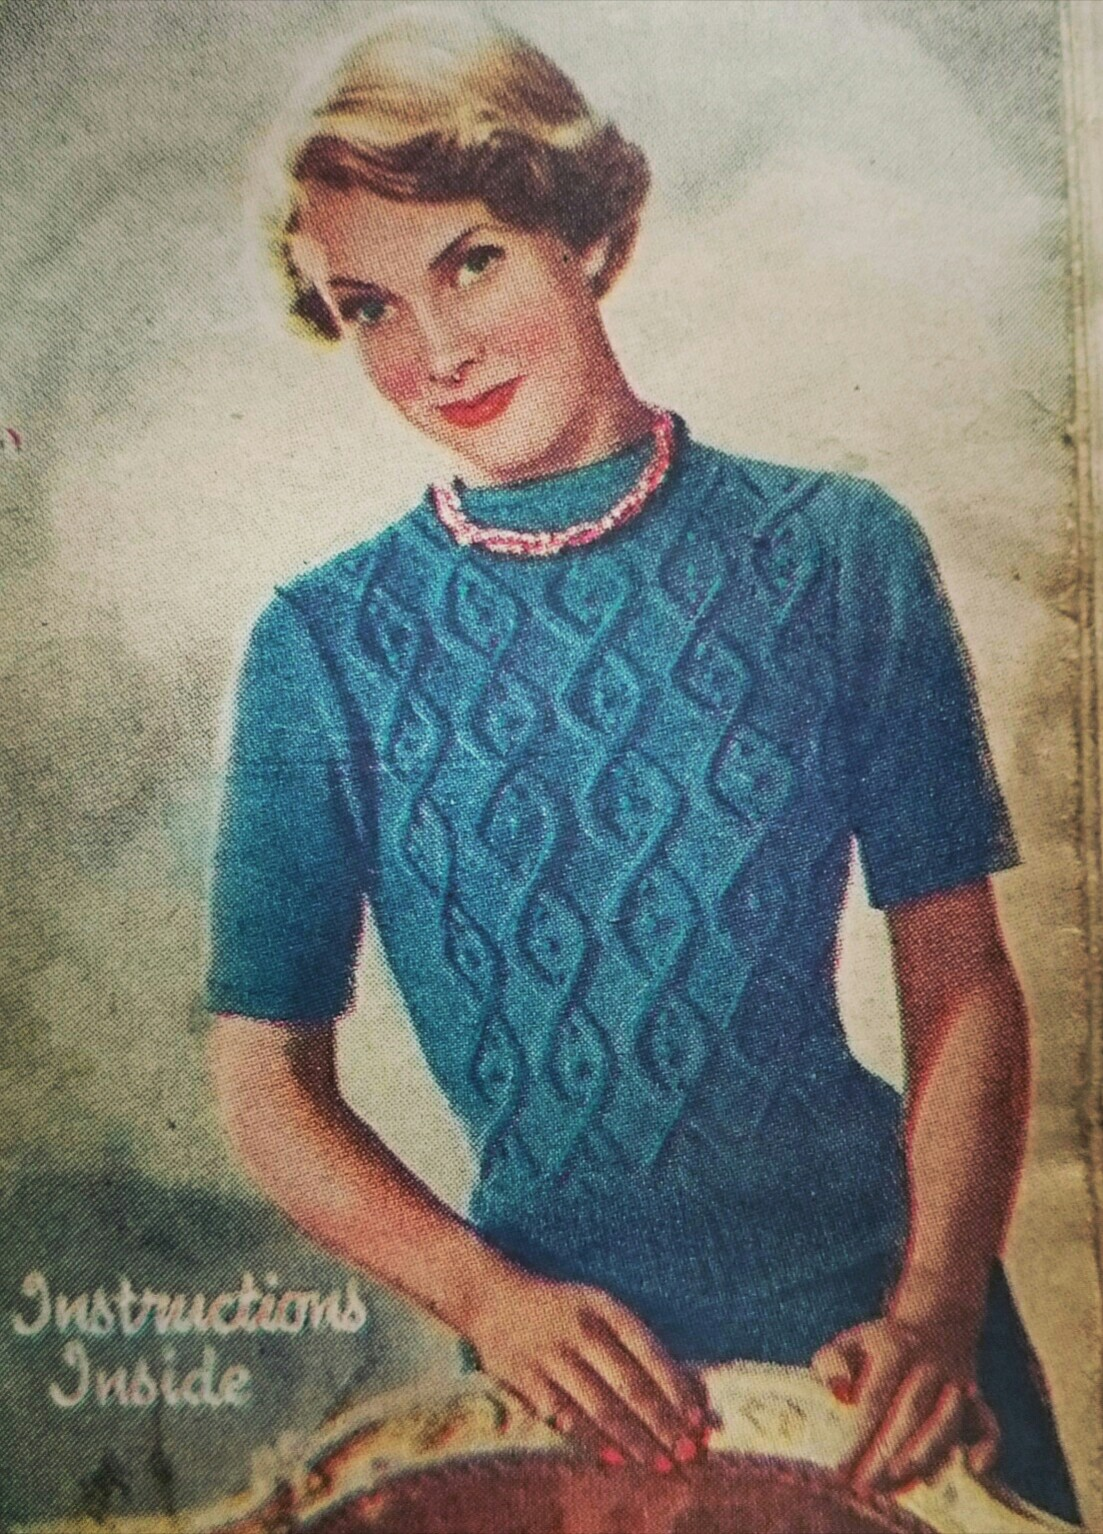 1940 Knitting Patterns Free : The Vintage Pattern Files: 1940s Knitting - Cable-And-Tuft Pattern Jumper